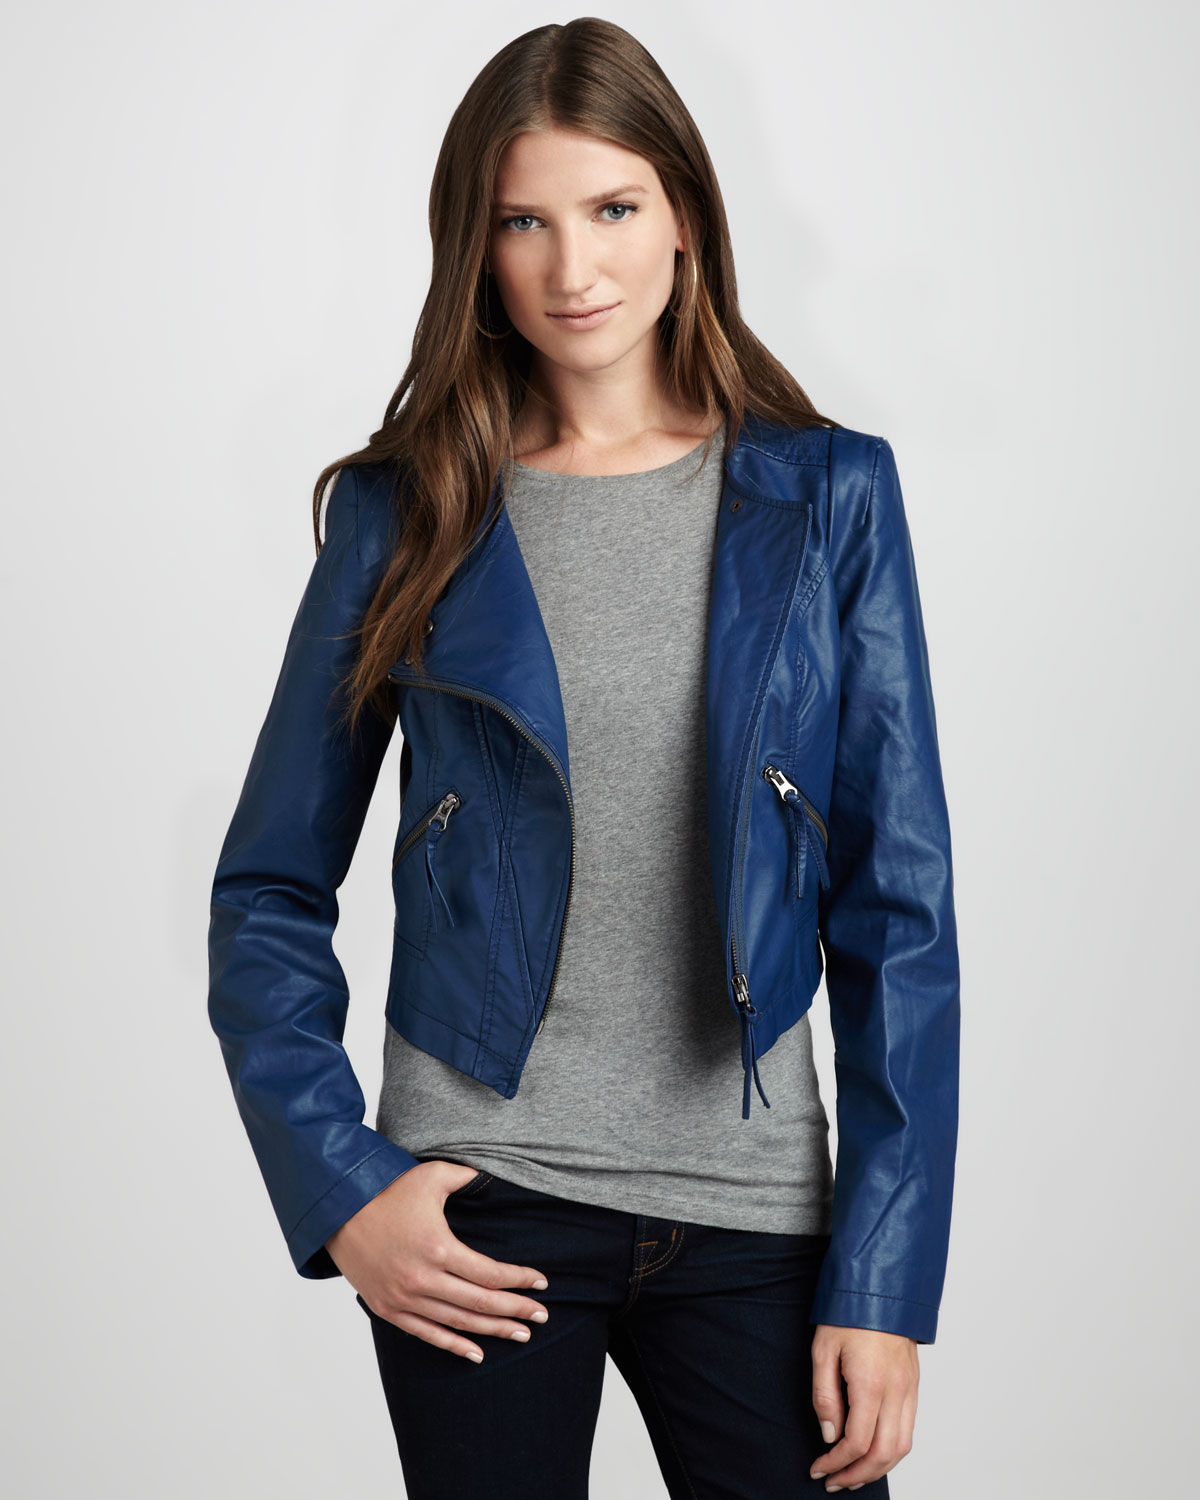 Free People Faux Leather Motorcycle Jacket In Blue Navy